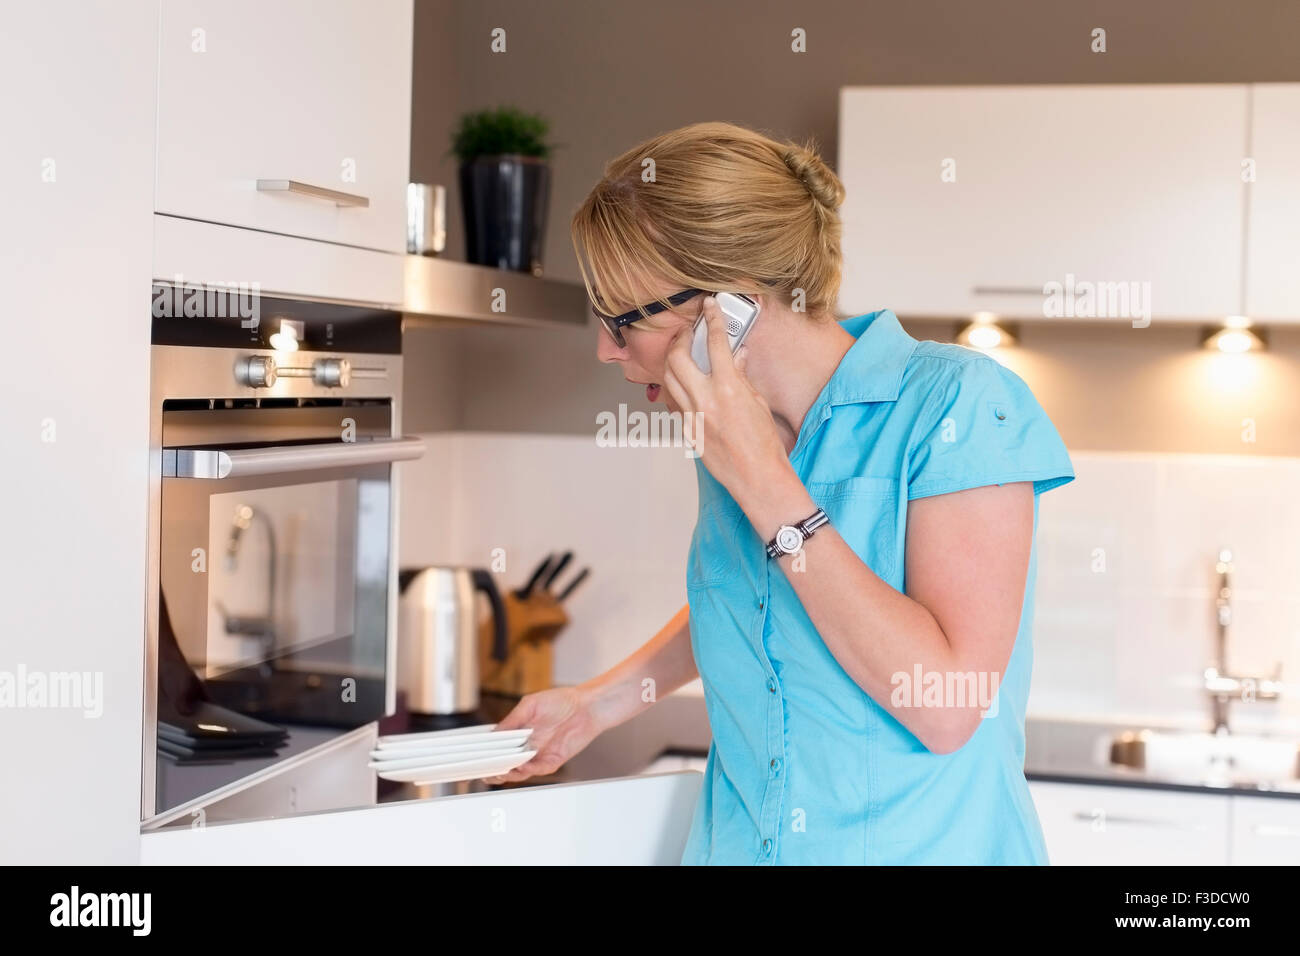 Woman cleaning house Stock Photo